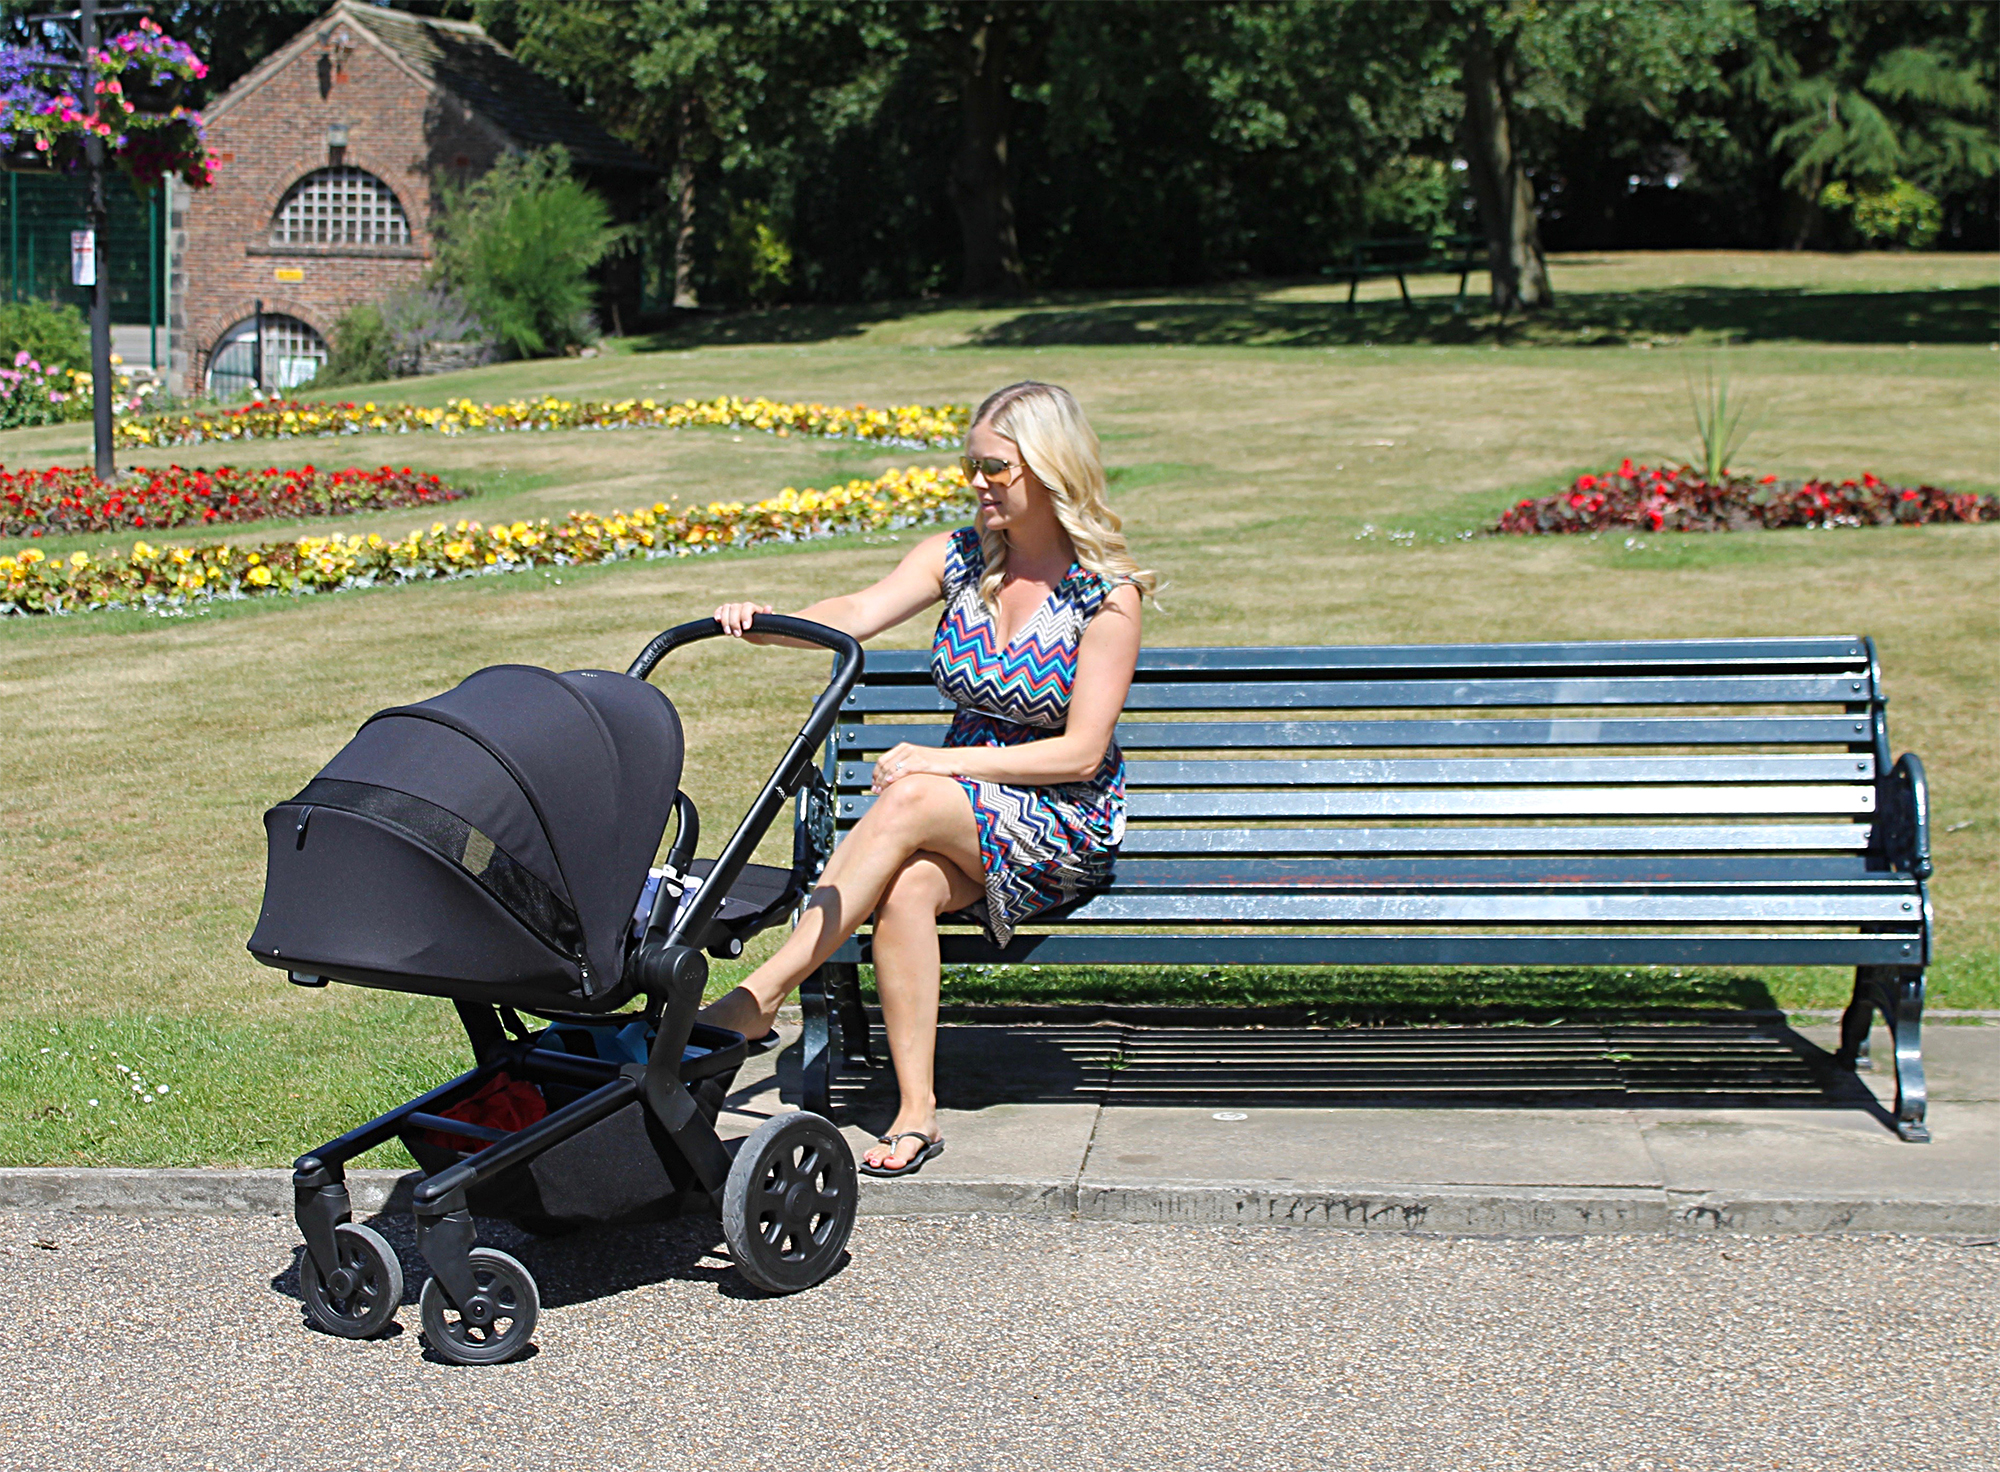 A woman is sitting on a green bench in a park. She is wearing a patterned dress and sunglasses and has her hand on a Joolz hub pushchair